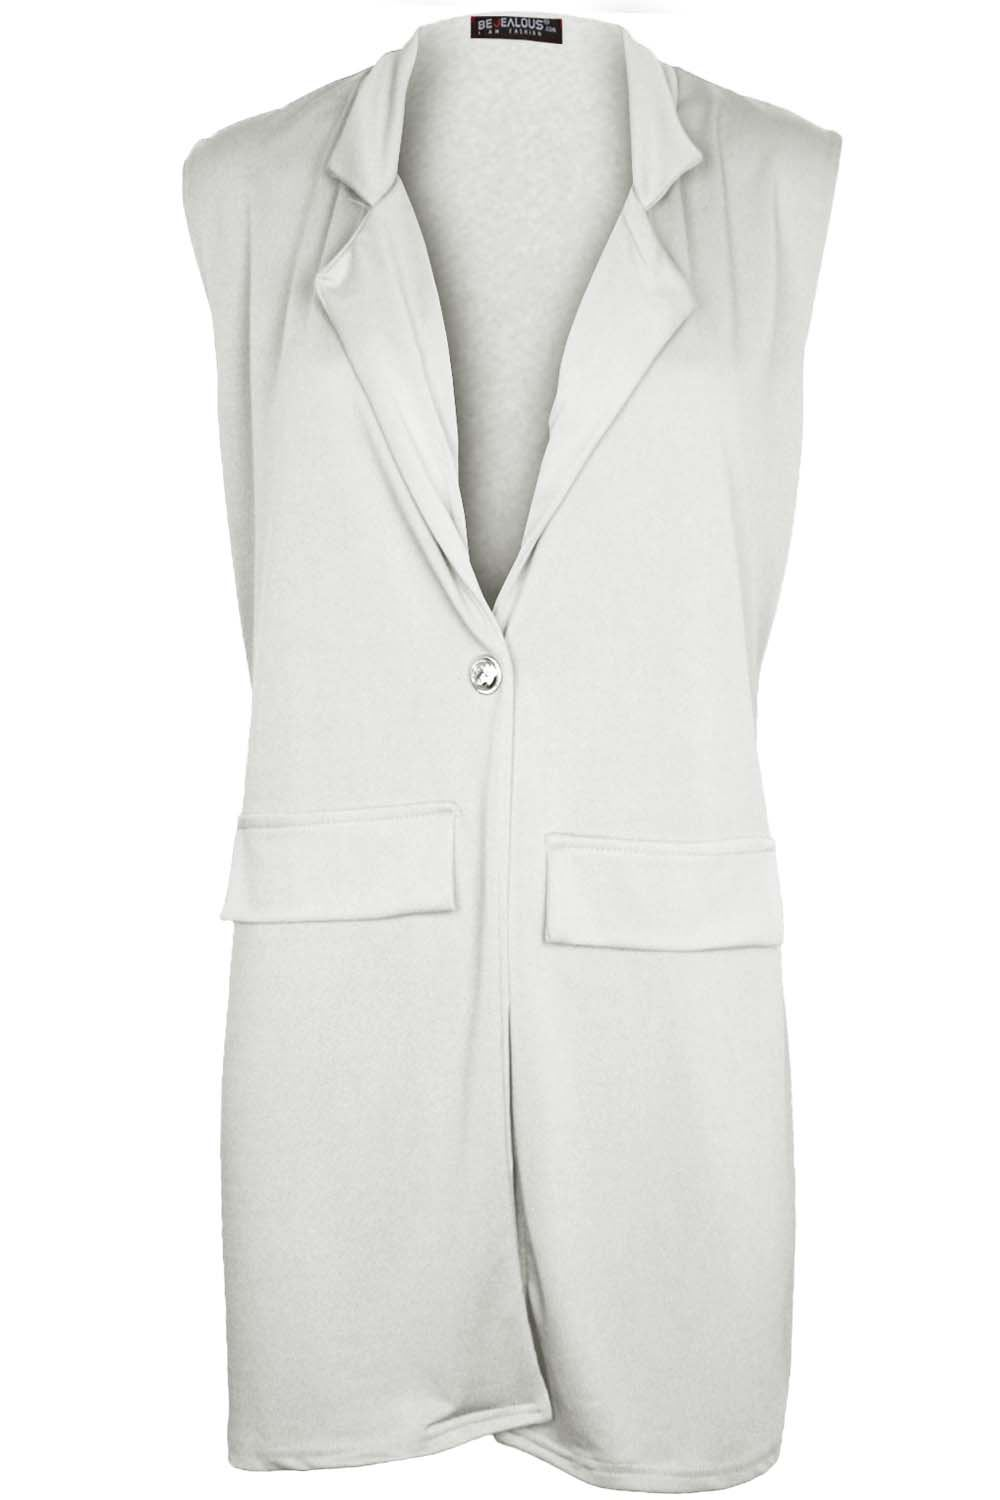 Women-Ladies-Sleeveless-Long-Duster-Coat-Collar-Waistcoat-Smart-Blazer-Plus-Size thumbnail 22